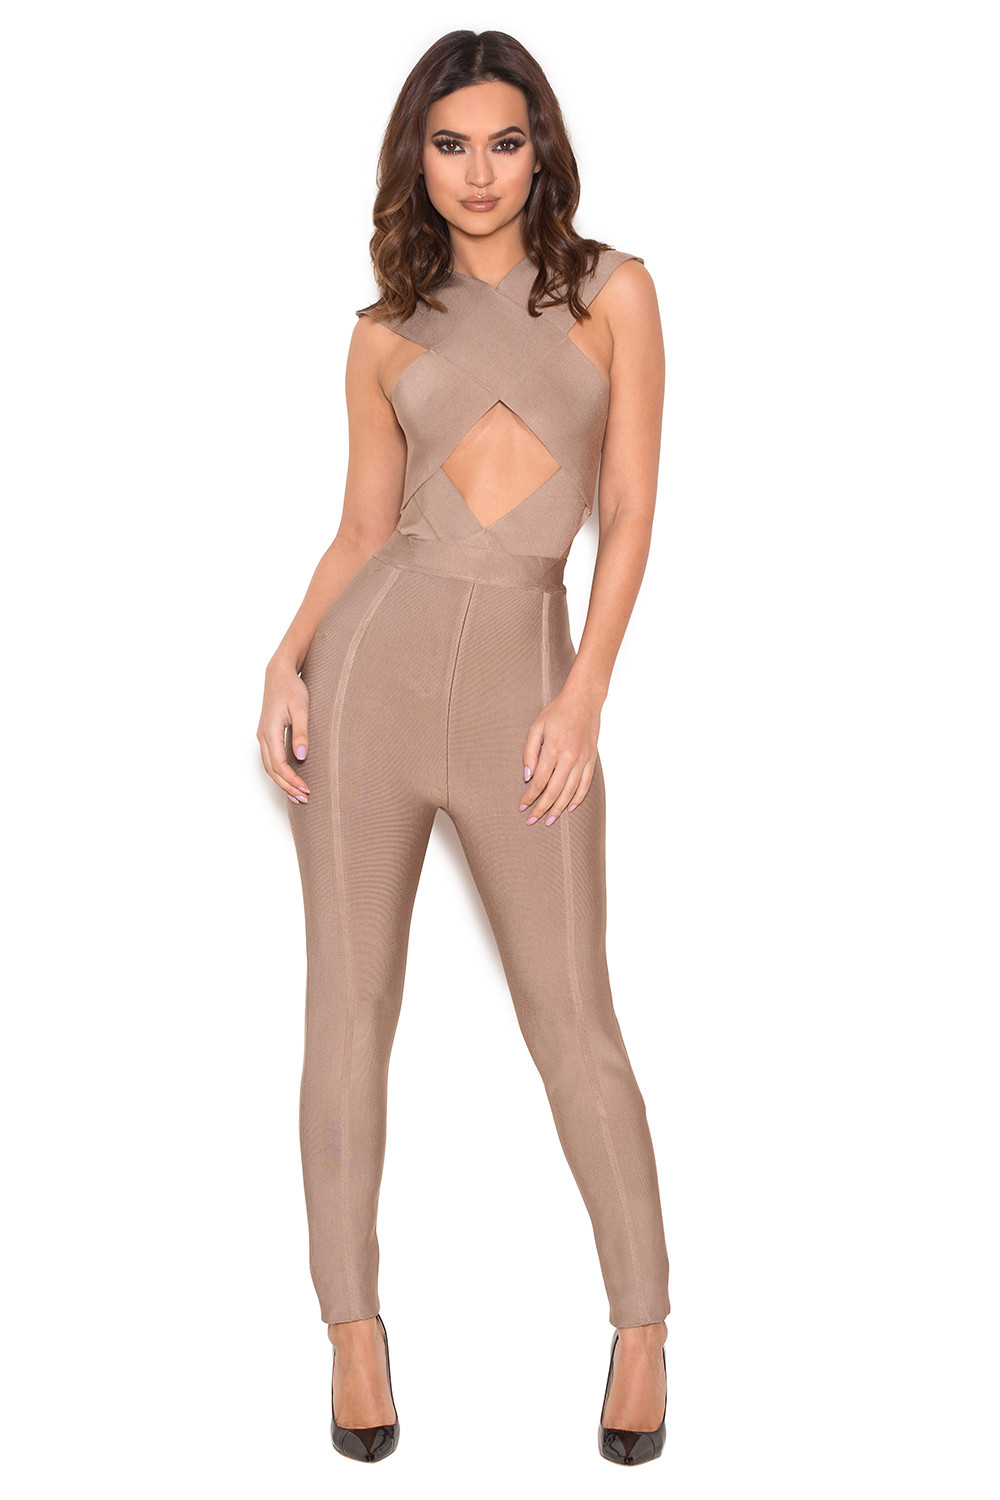 cbf66227cd31 Clothing   Jumpsuits    Aster  Taupe Bandage Crossover Front Jumpsuit